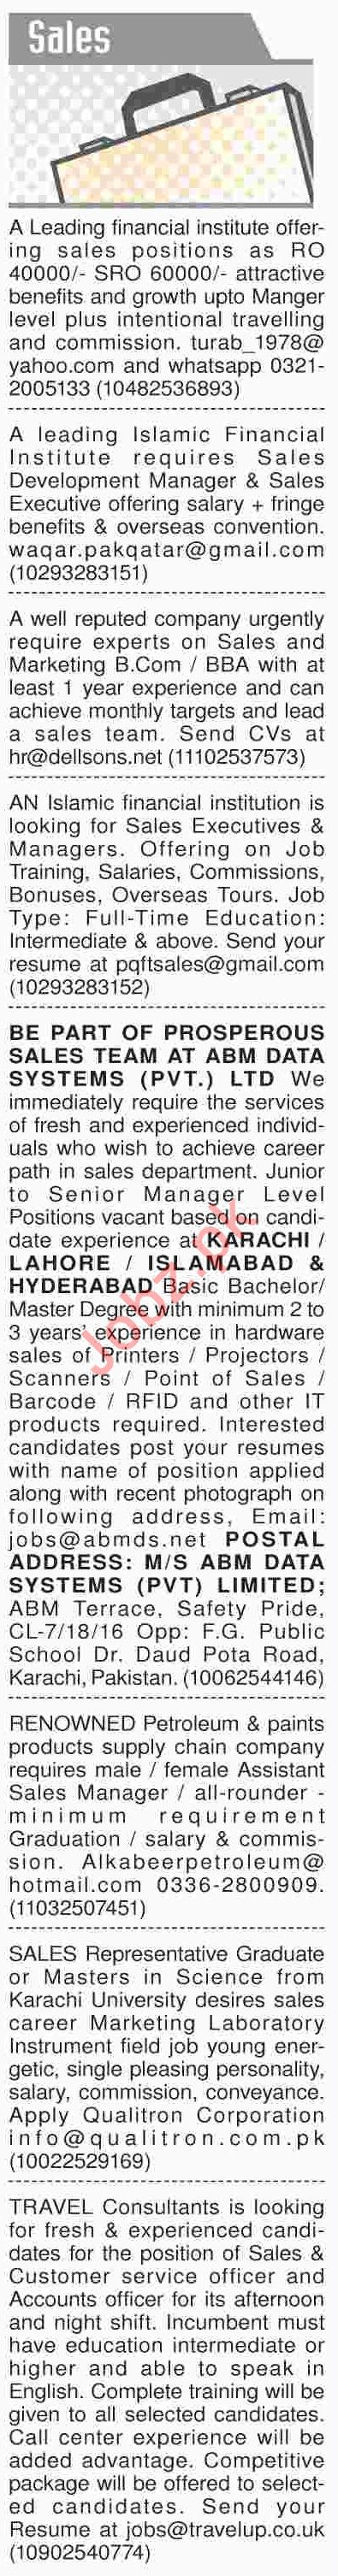 Dawn Sunday Classified Ads 14th April 2019 for Sales Staff